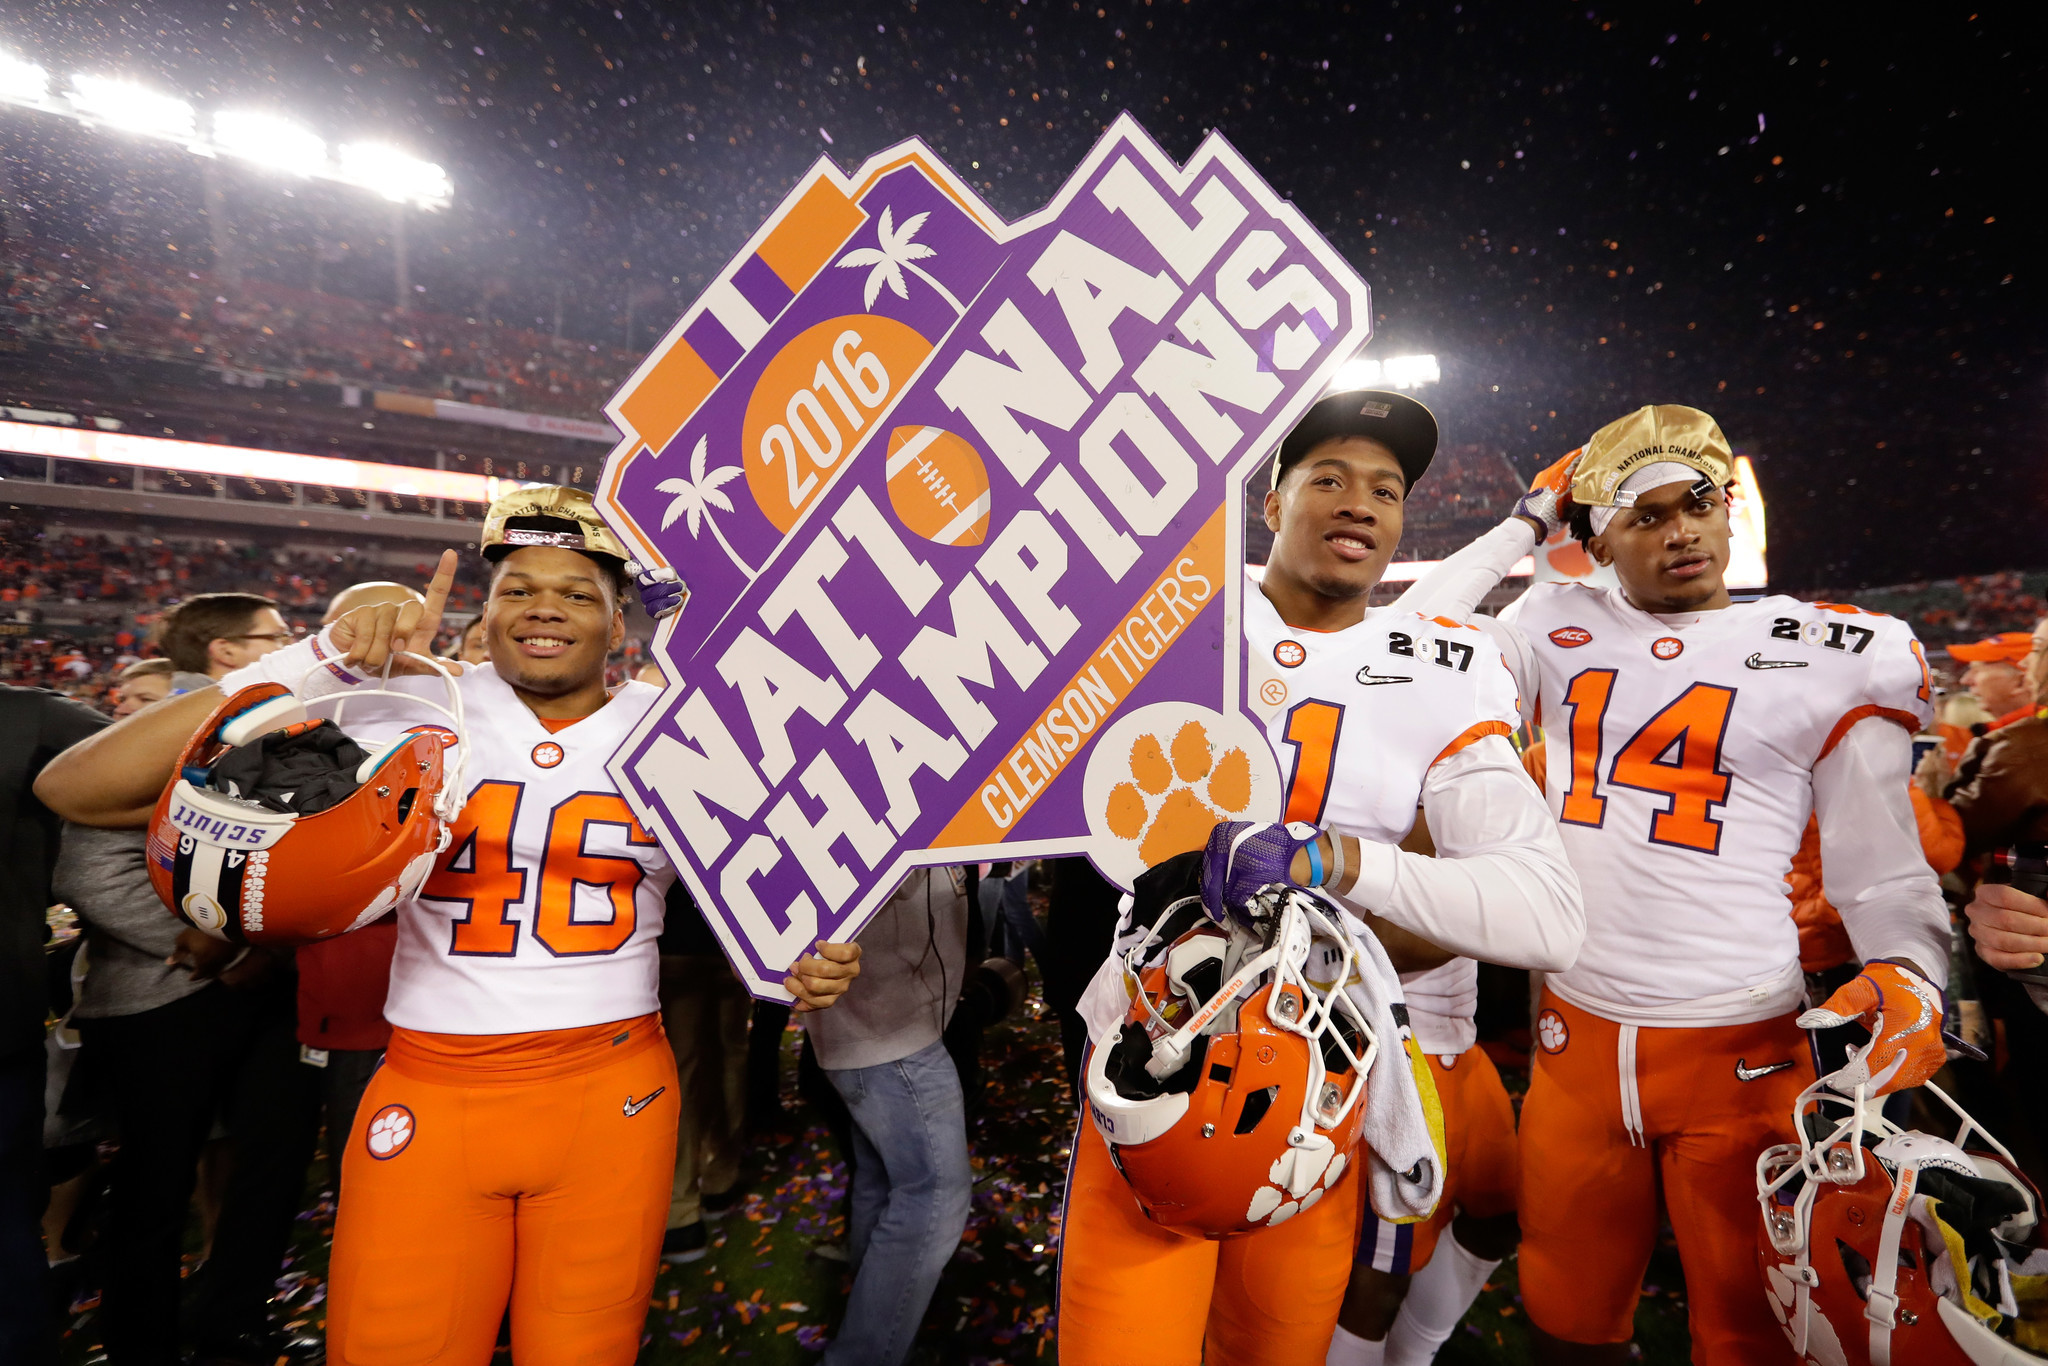 Clemson-Alabama rematch gets a place in the history of ...